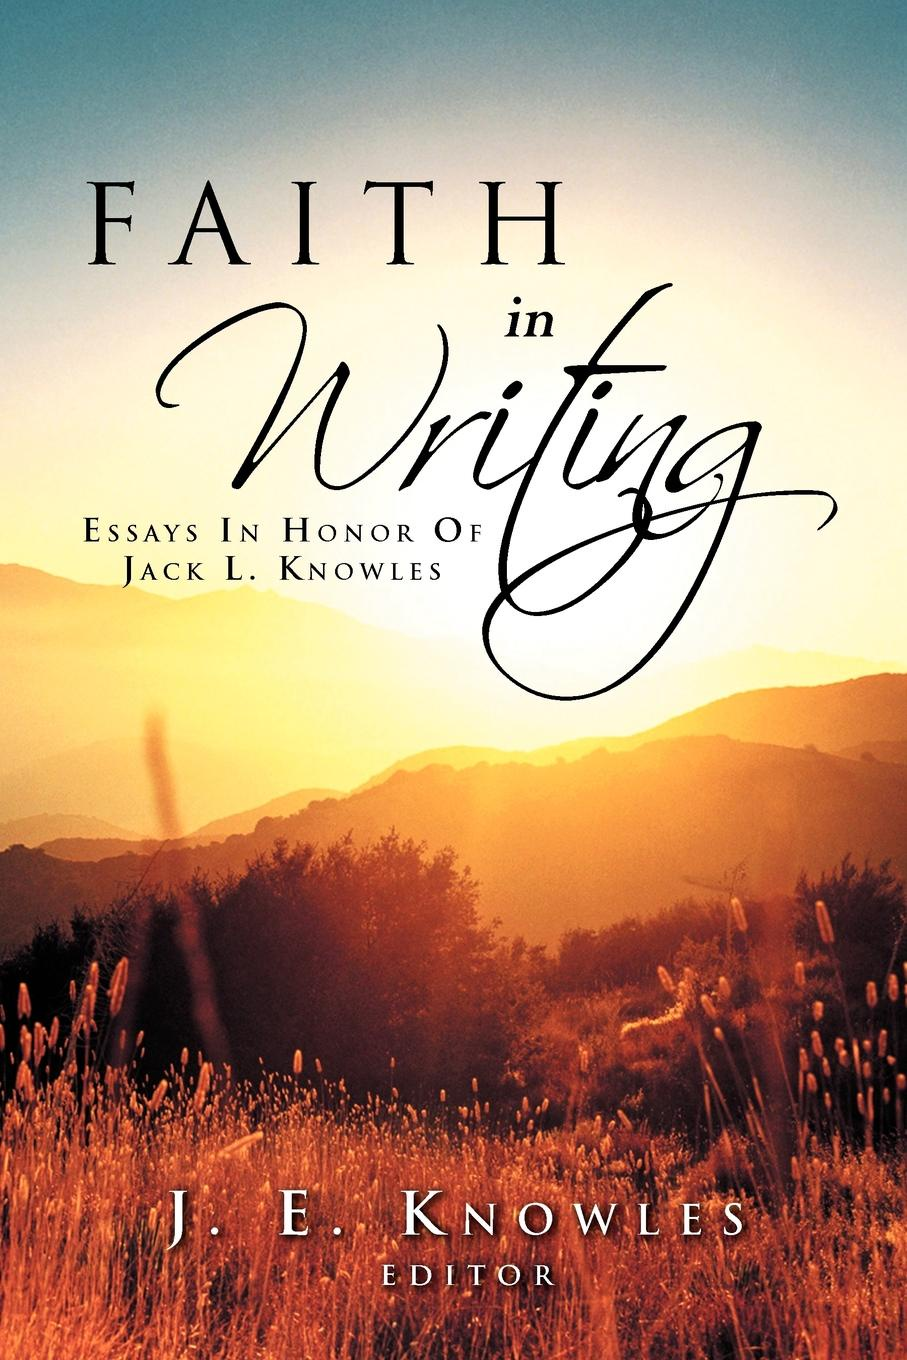 Editor J. E. Knowles Faith in Writing. Essays in Honor of Jack L. Knowles a t jones e j waggoner lessons on faith